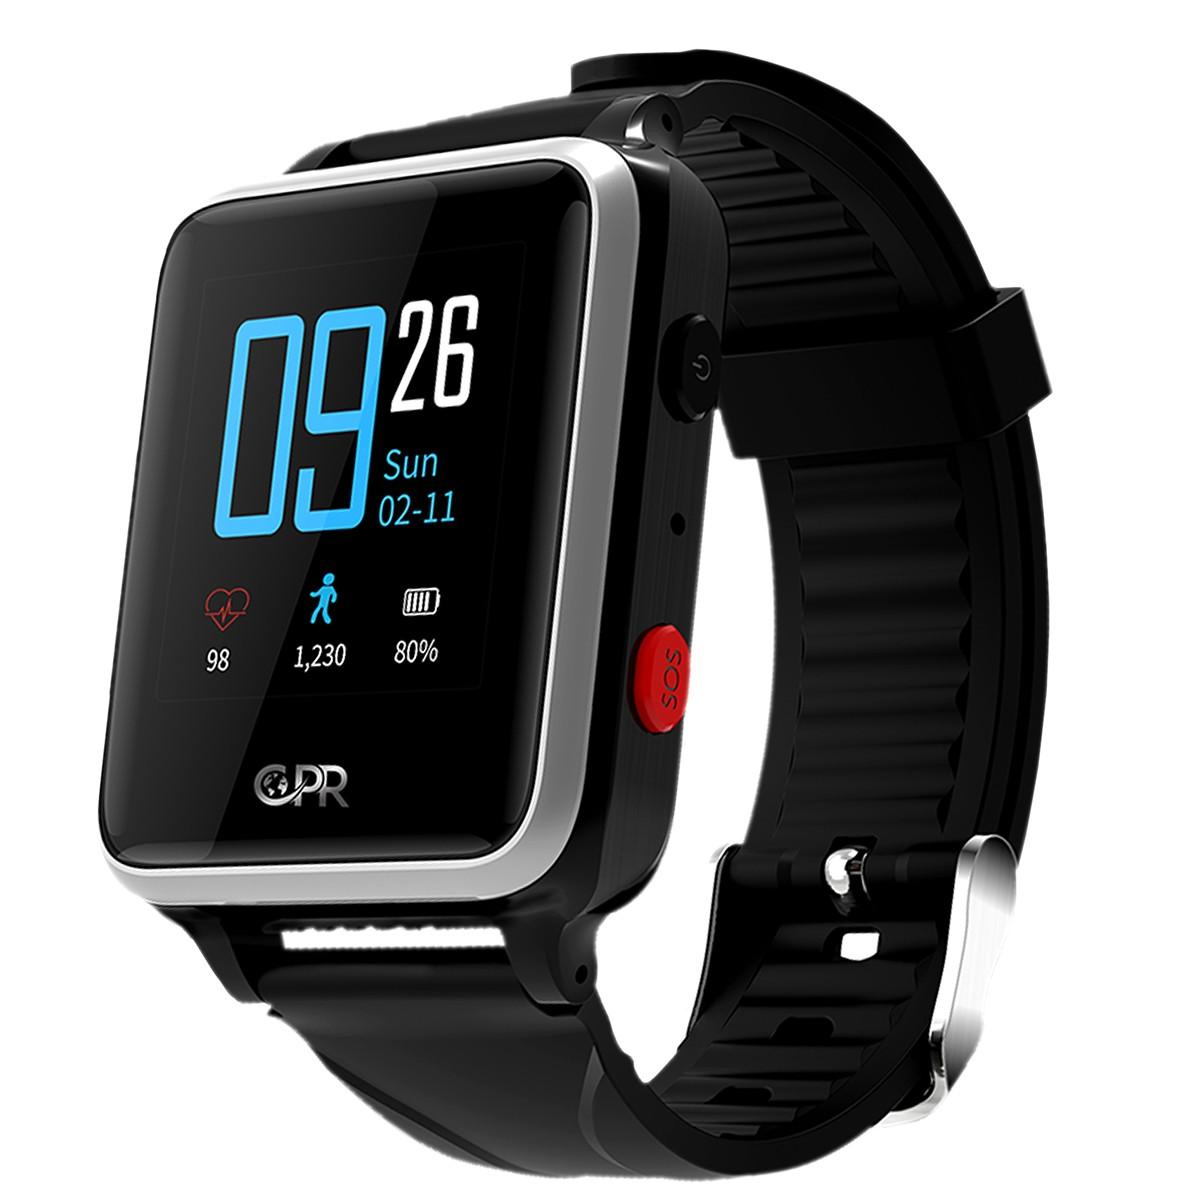 CPR Guardian II GPS Smart Watch for Adults | Robert Dyas